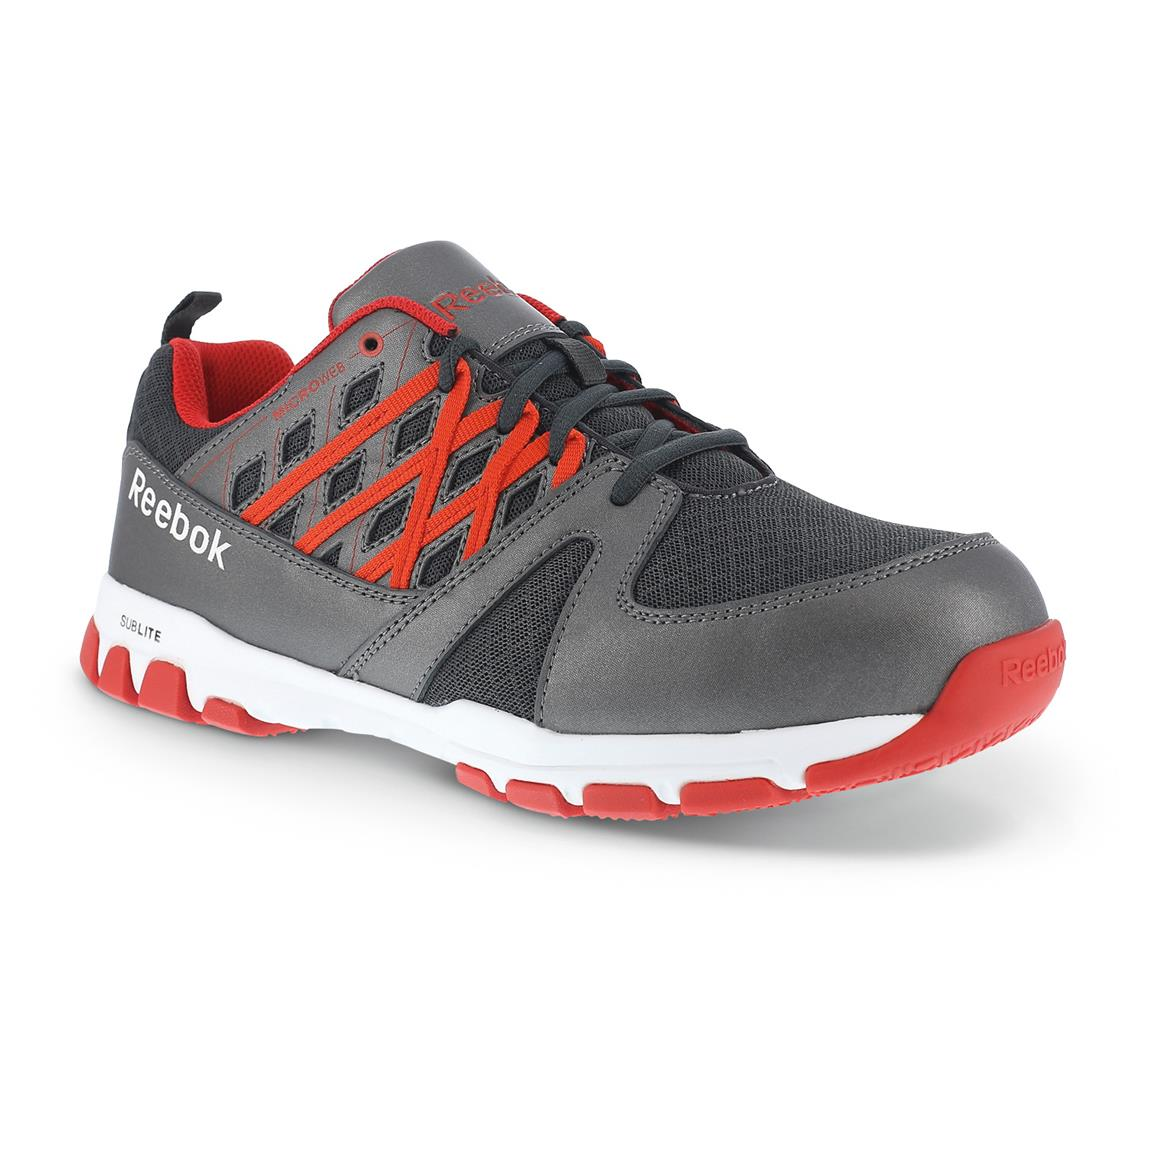 Men's Reebok Sublite Work Shoes, Static Dissipating, Gray / Red